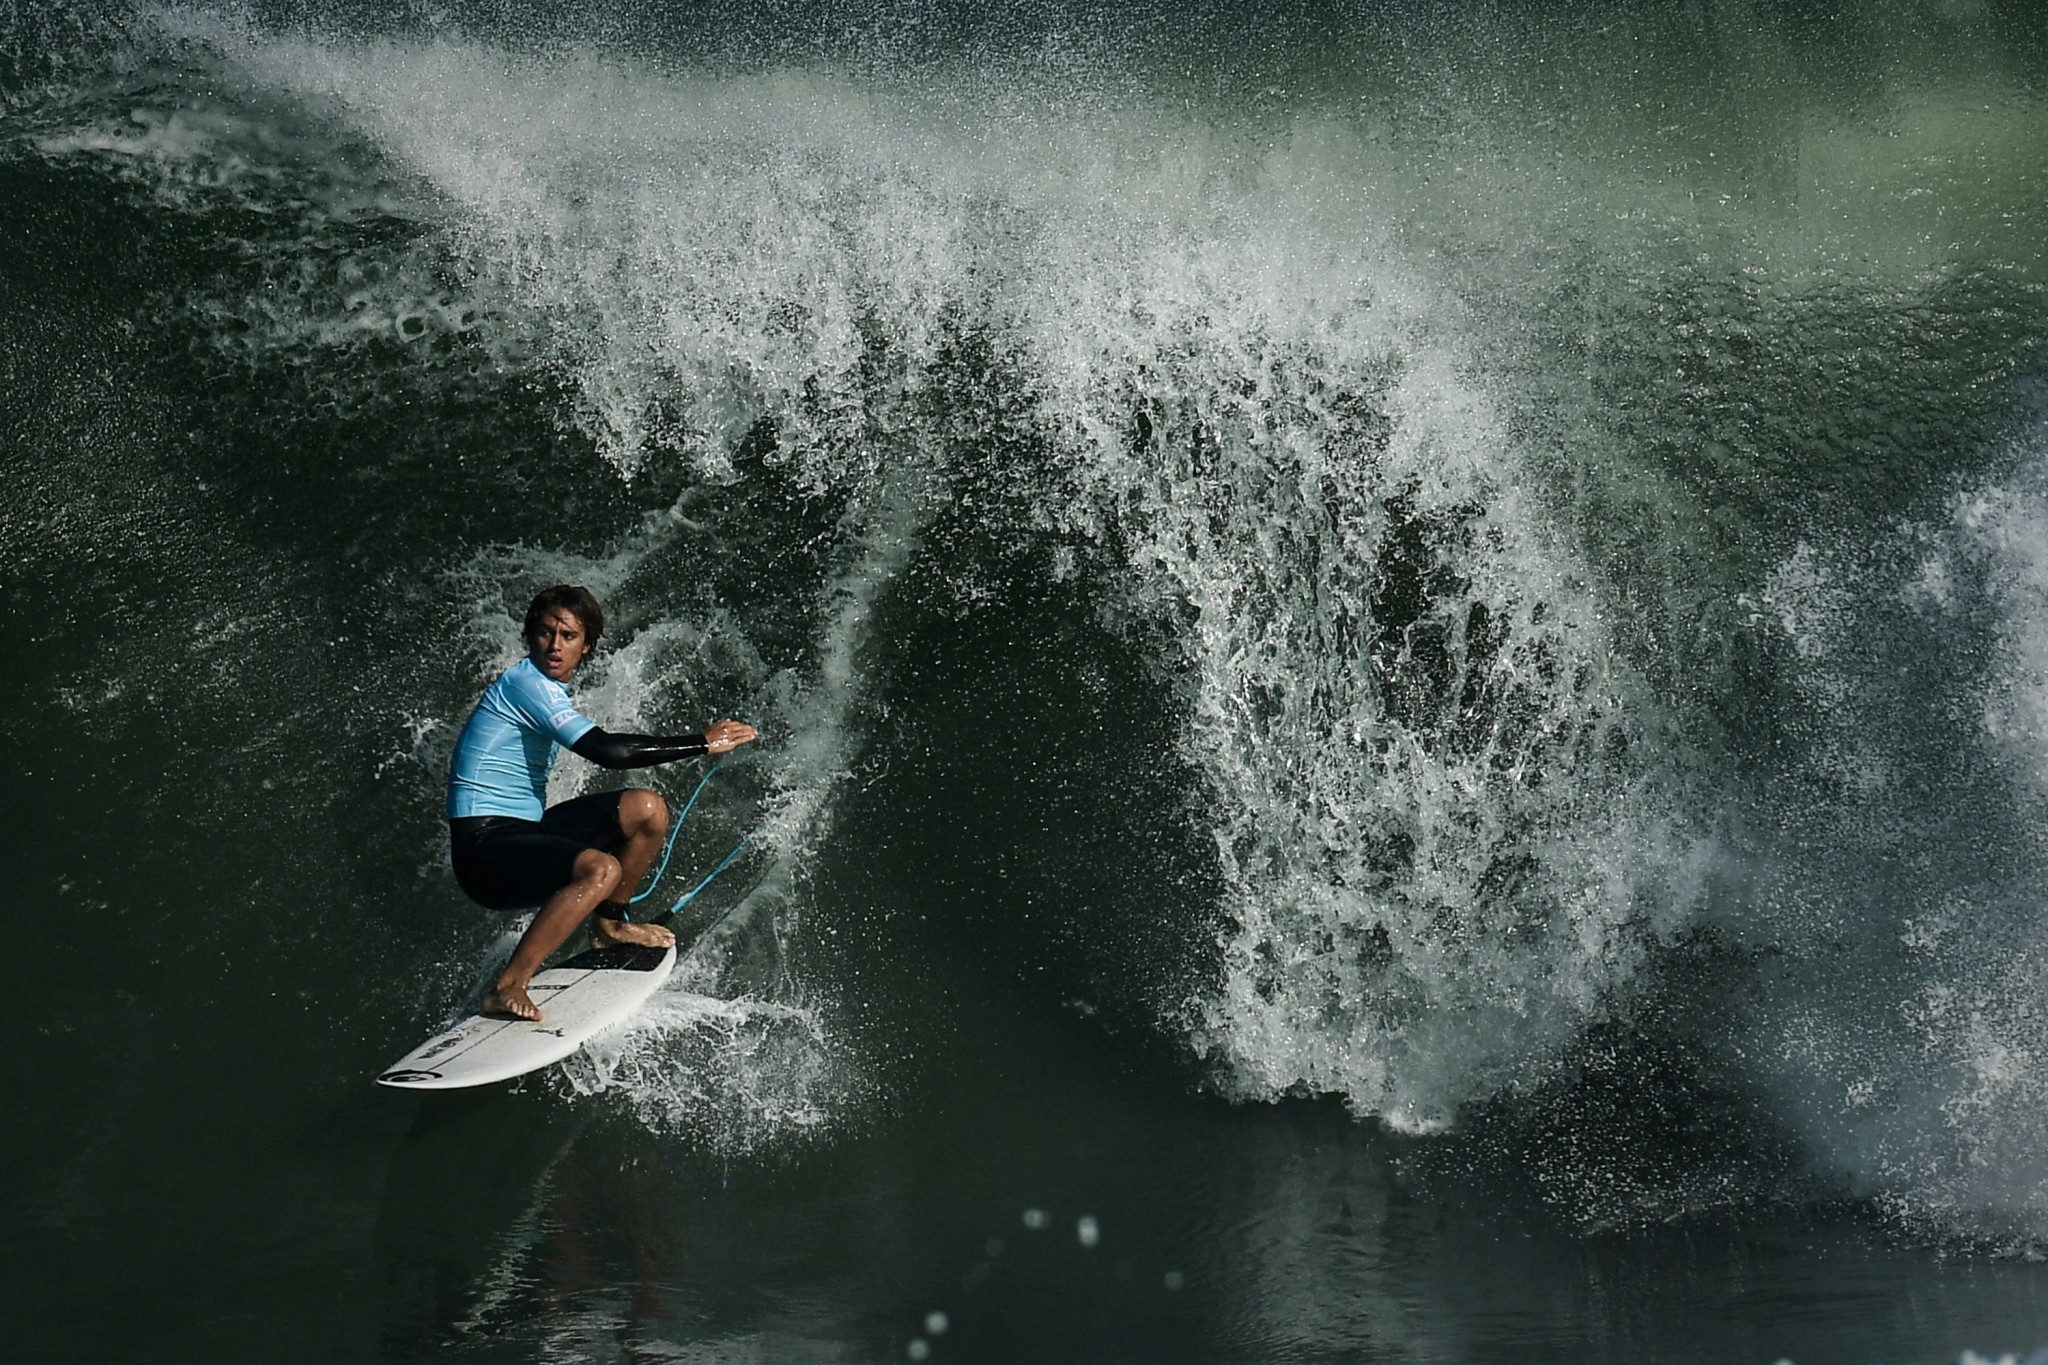 Olympic Agenda 2020 has allowed Paris 2024 to propose Tahiti as its destination for surfing  ©Getty Images